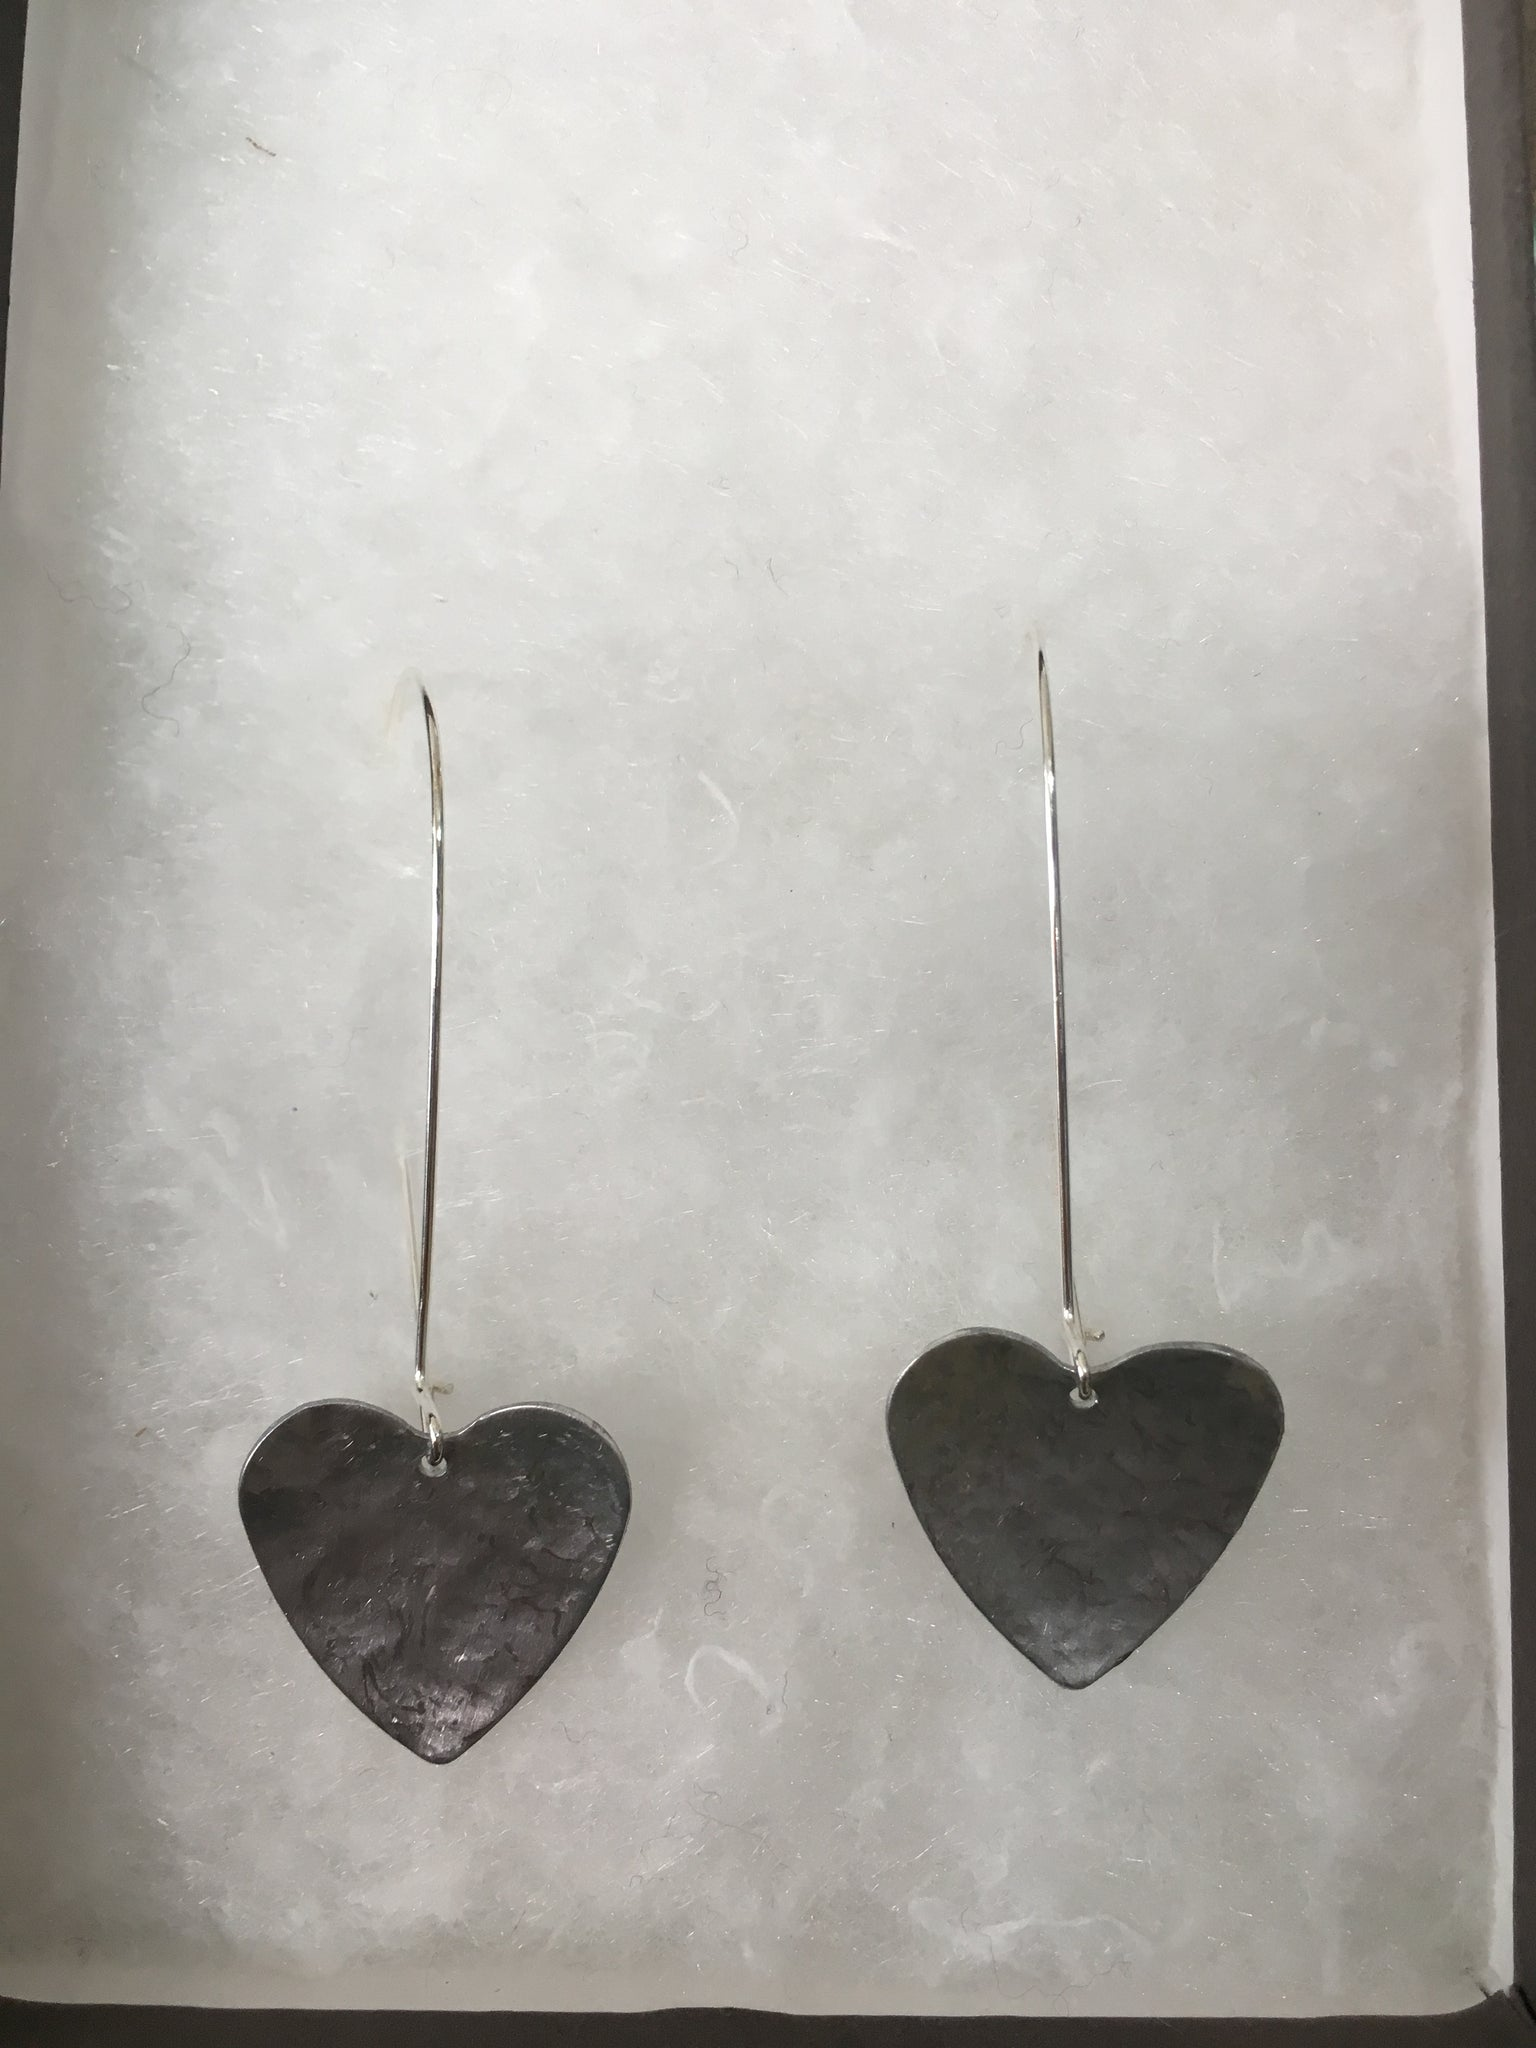 Handmade Cornish Heart earrings